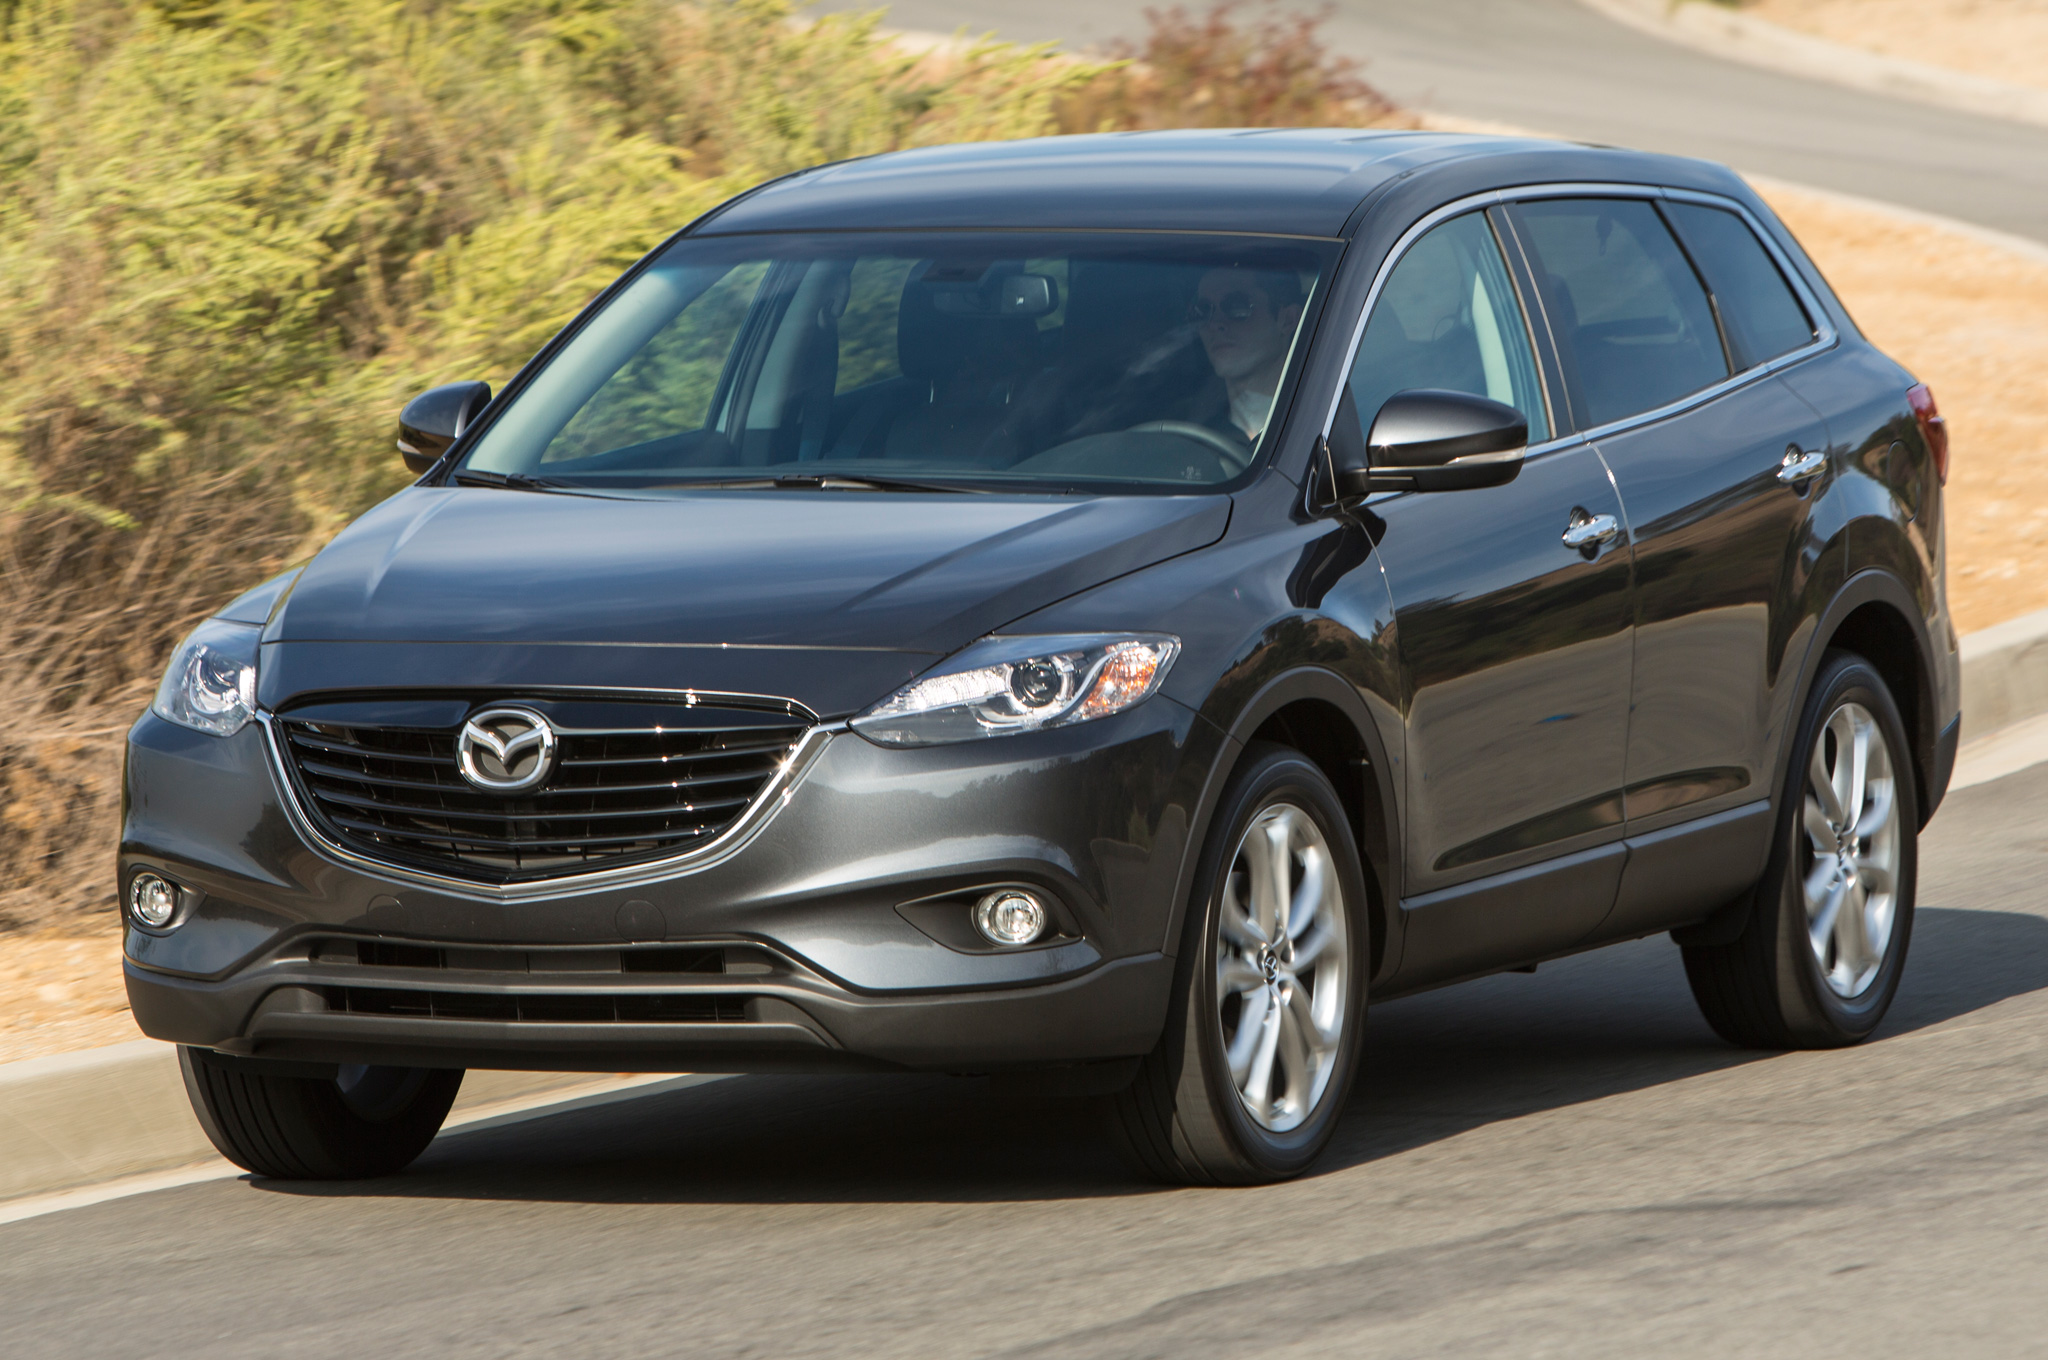 2014 mazda cx-9 priced at $30,780, awd gt trim at $37,420 - motortrend